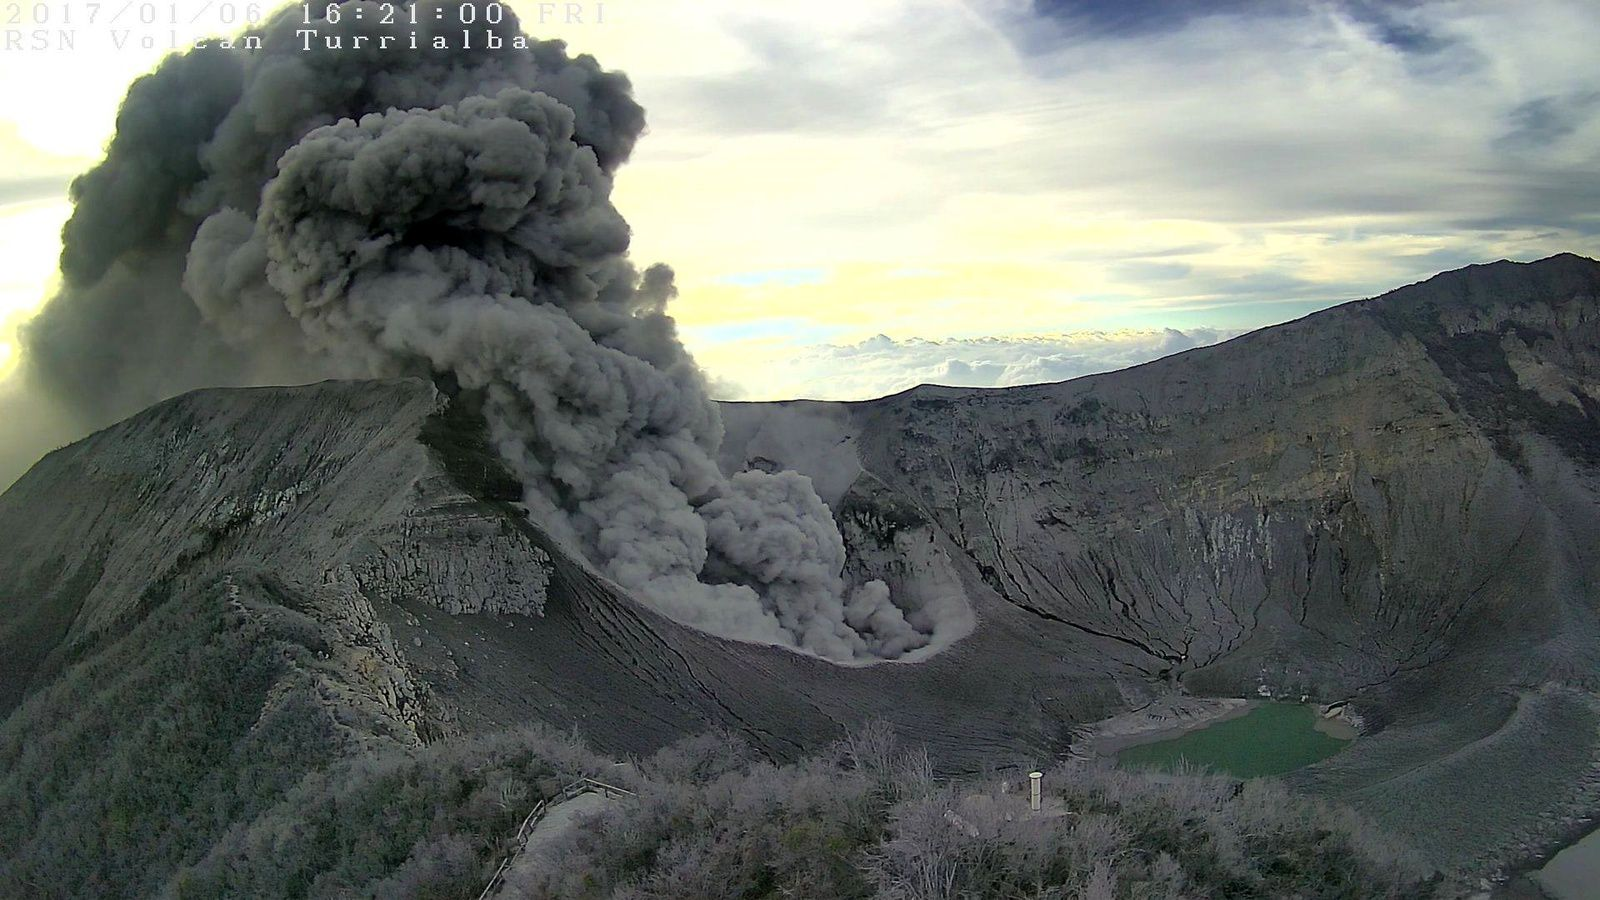 Turrialba 06.01.2017 / 10h20-21 - Ovsicori webcam and photo of Norman Gómez, from Cervantes de Alvarado / Cartago via Ovsicori